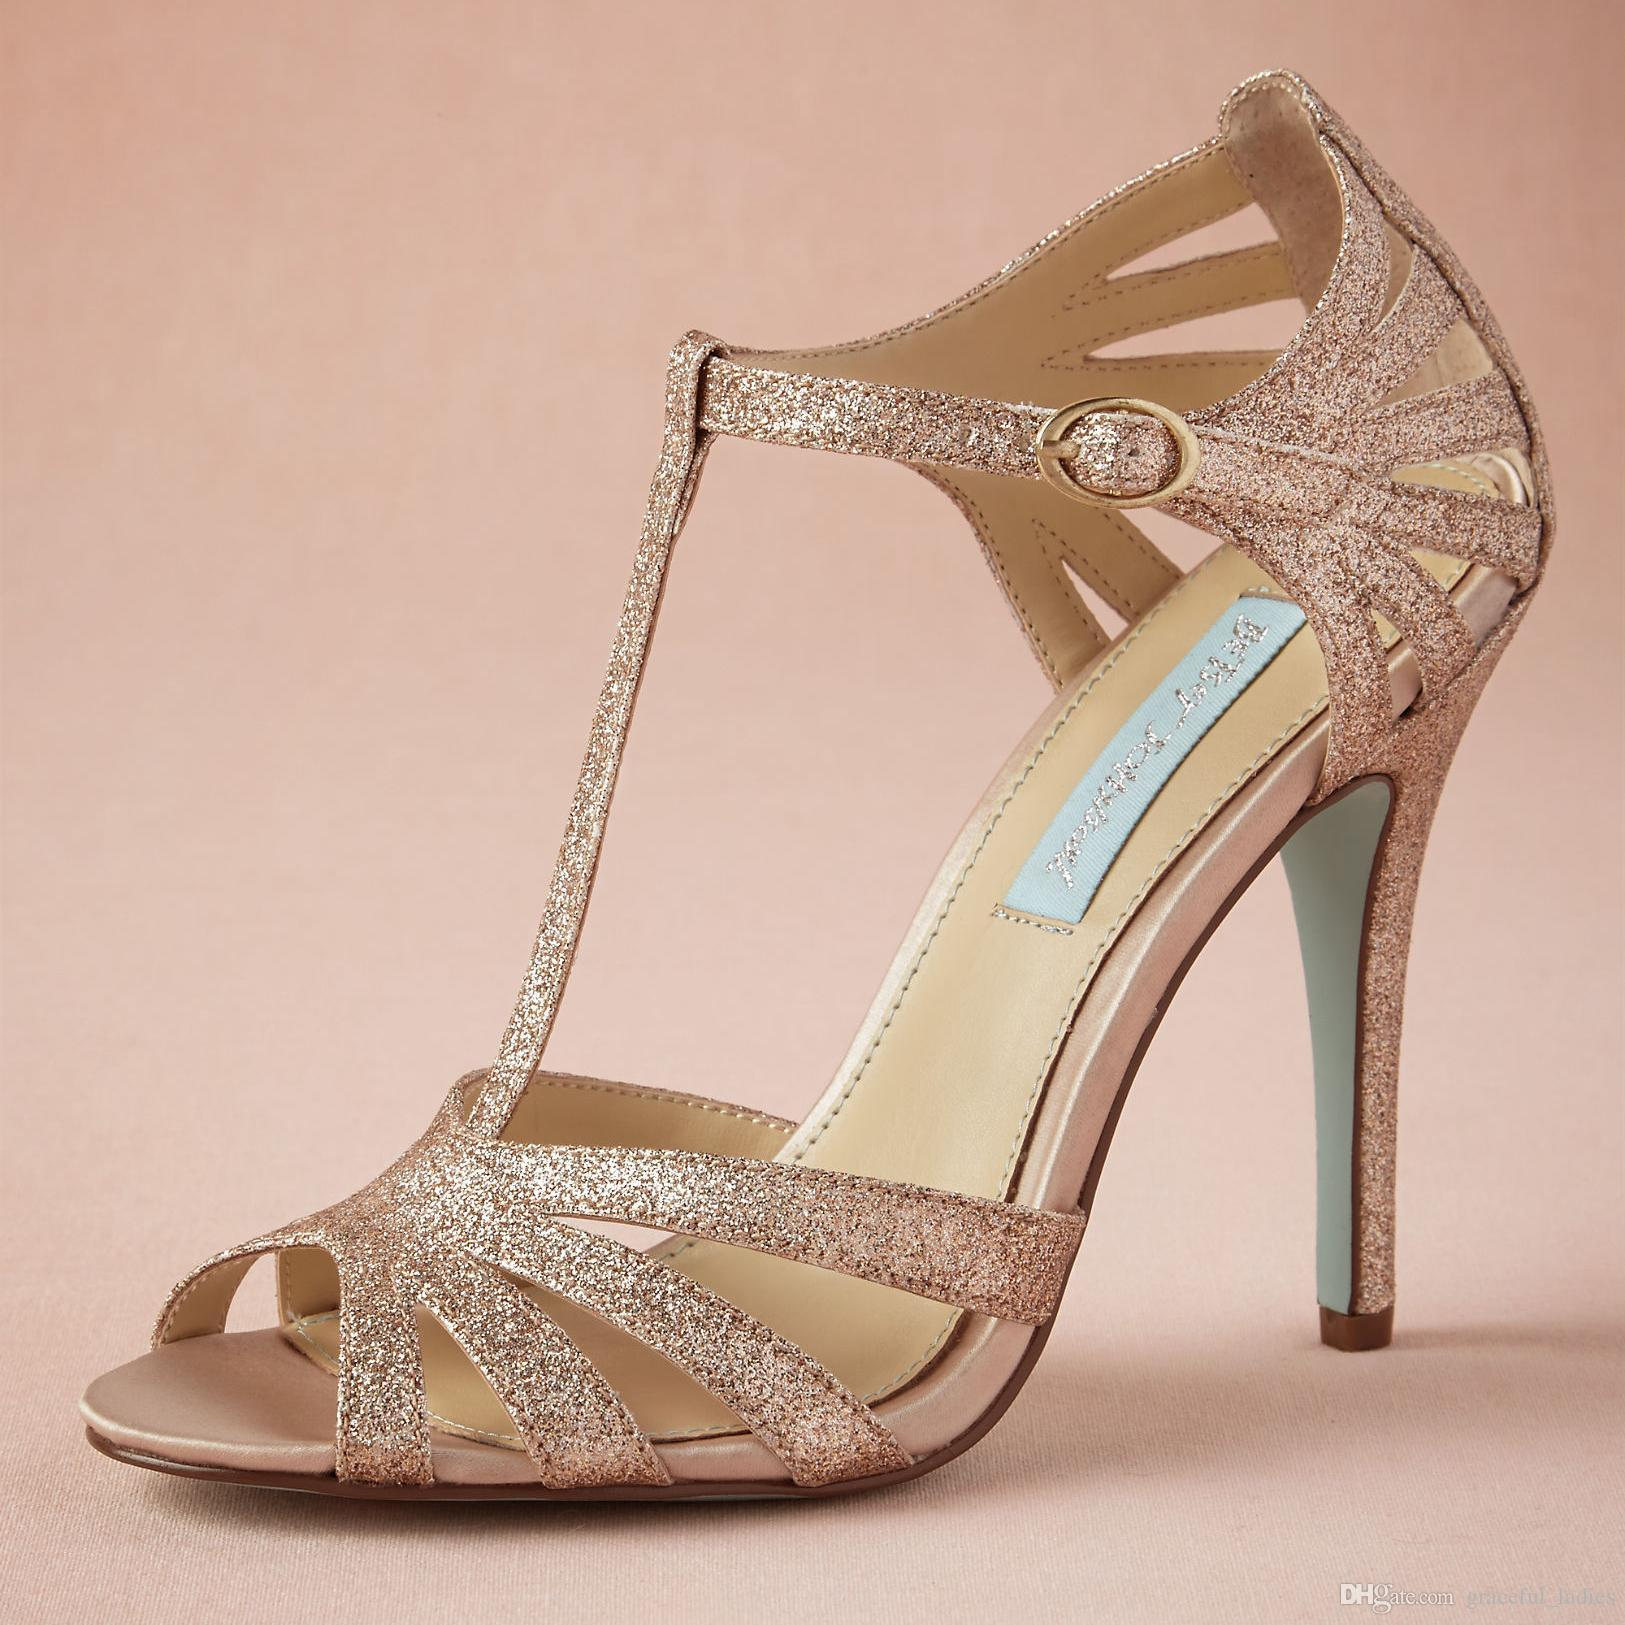 wedding shoes 3.5 inch heel photo - 1